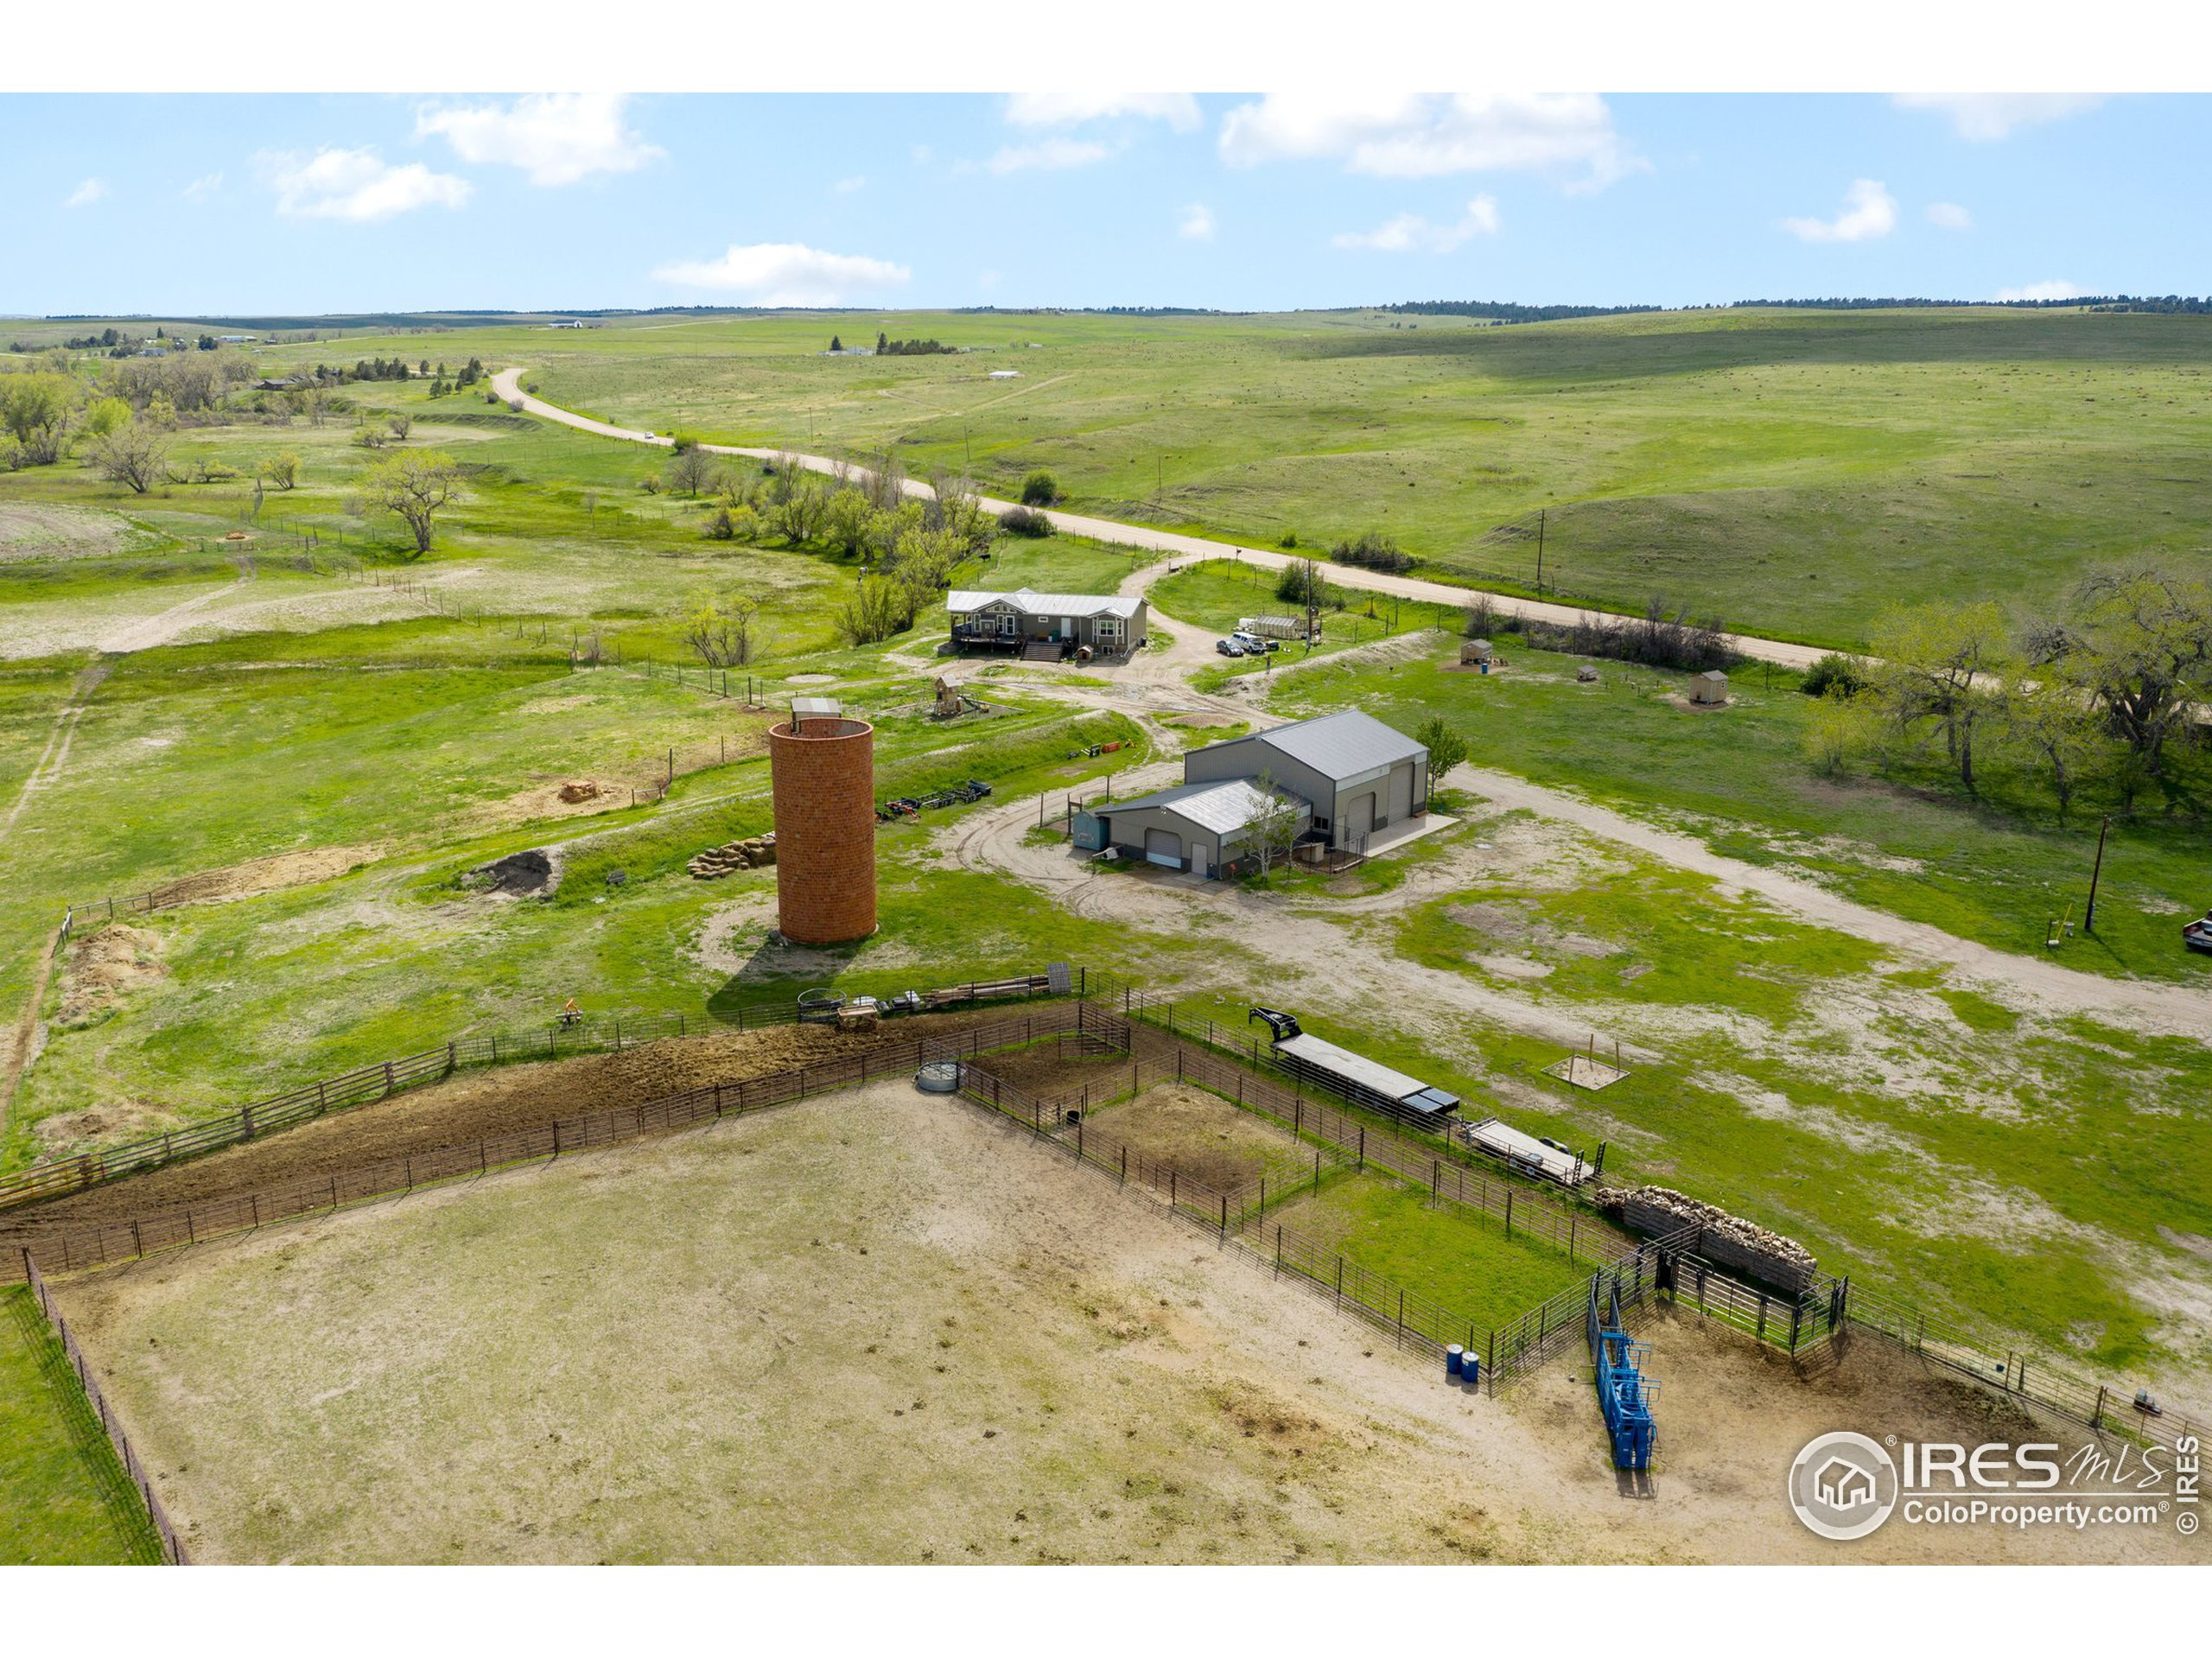 Corral: 3 Separate Pens With Water and Electricity and the staple of the property a freestanding brick silo